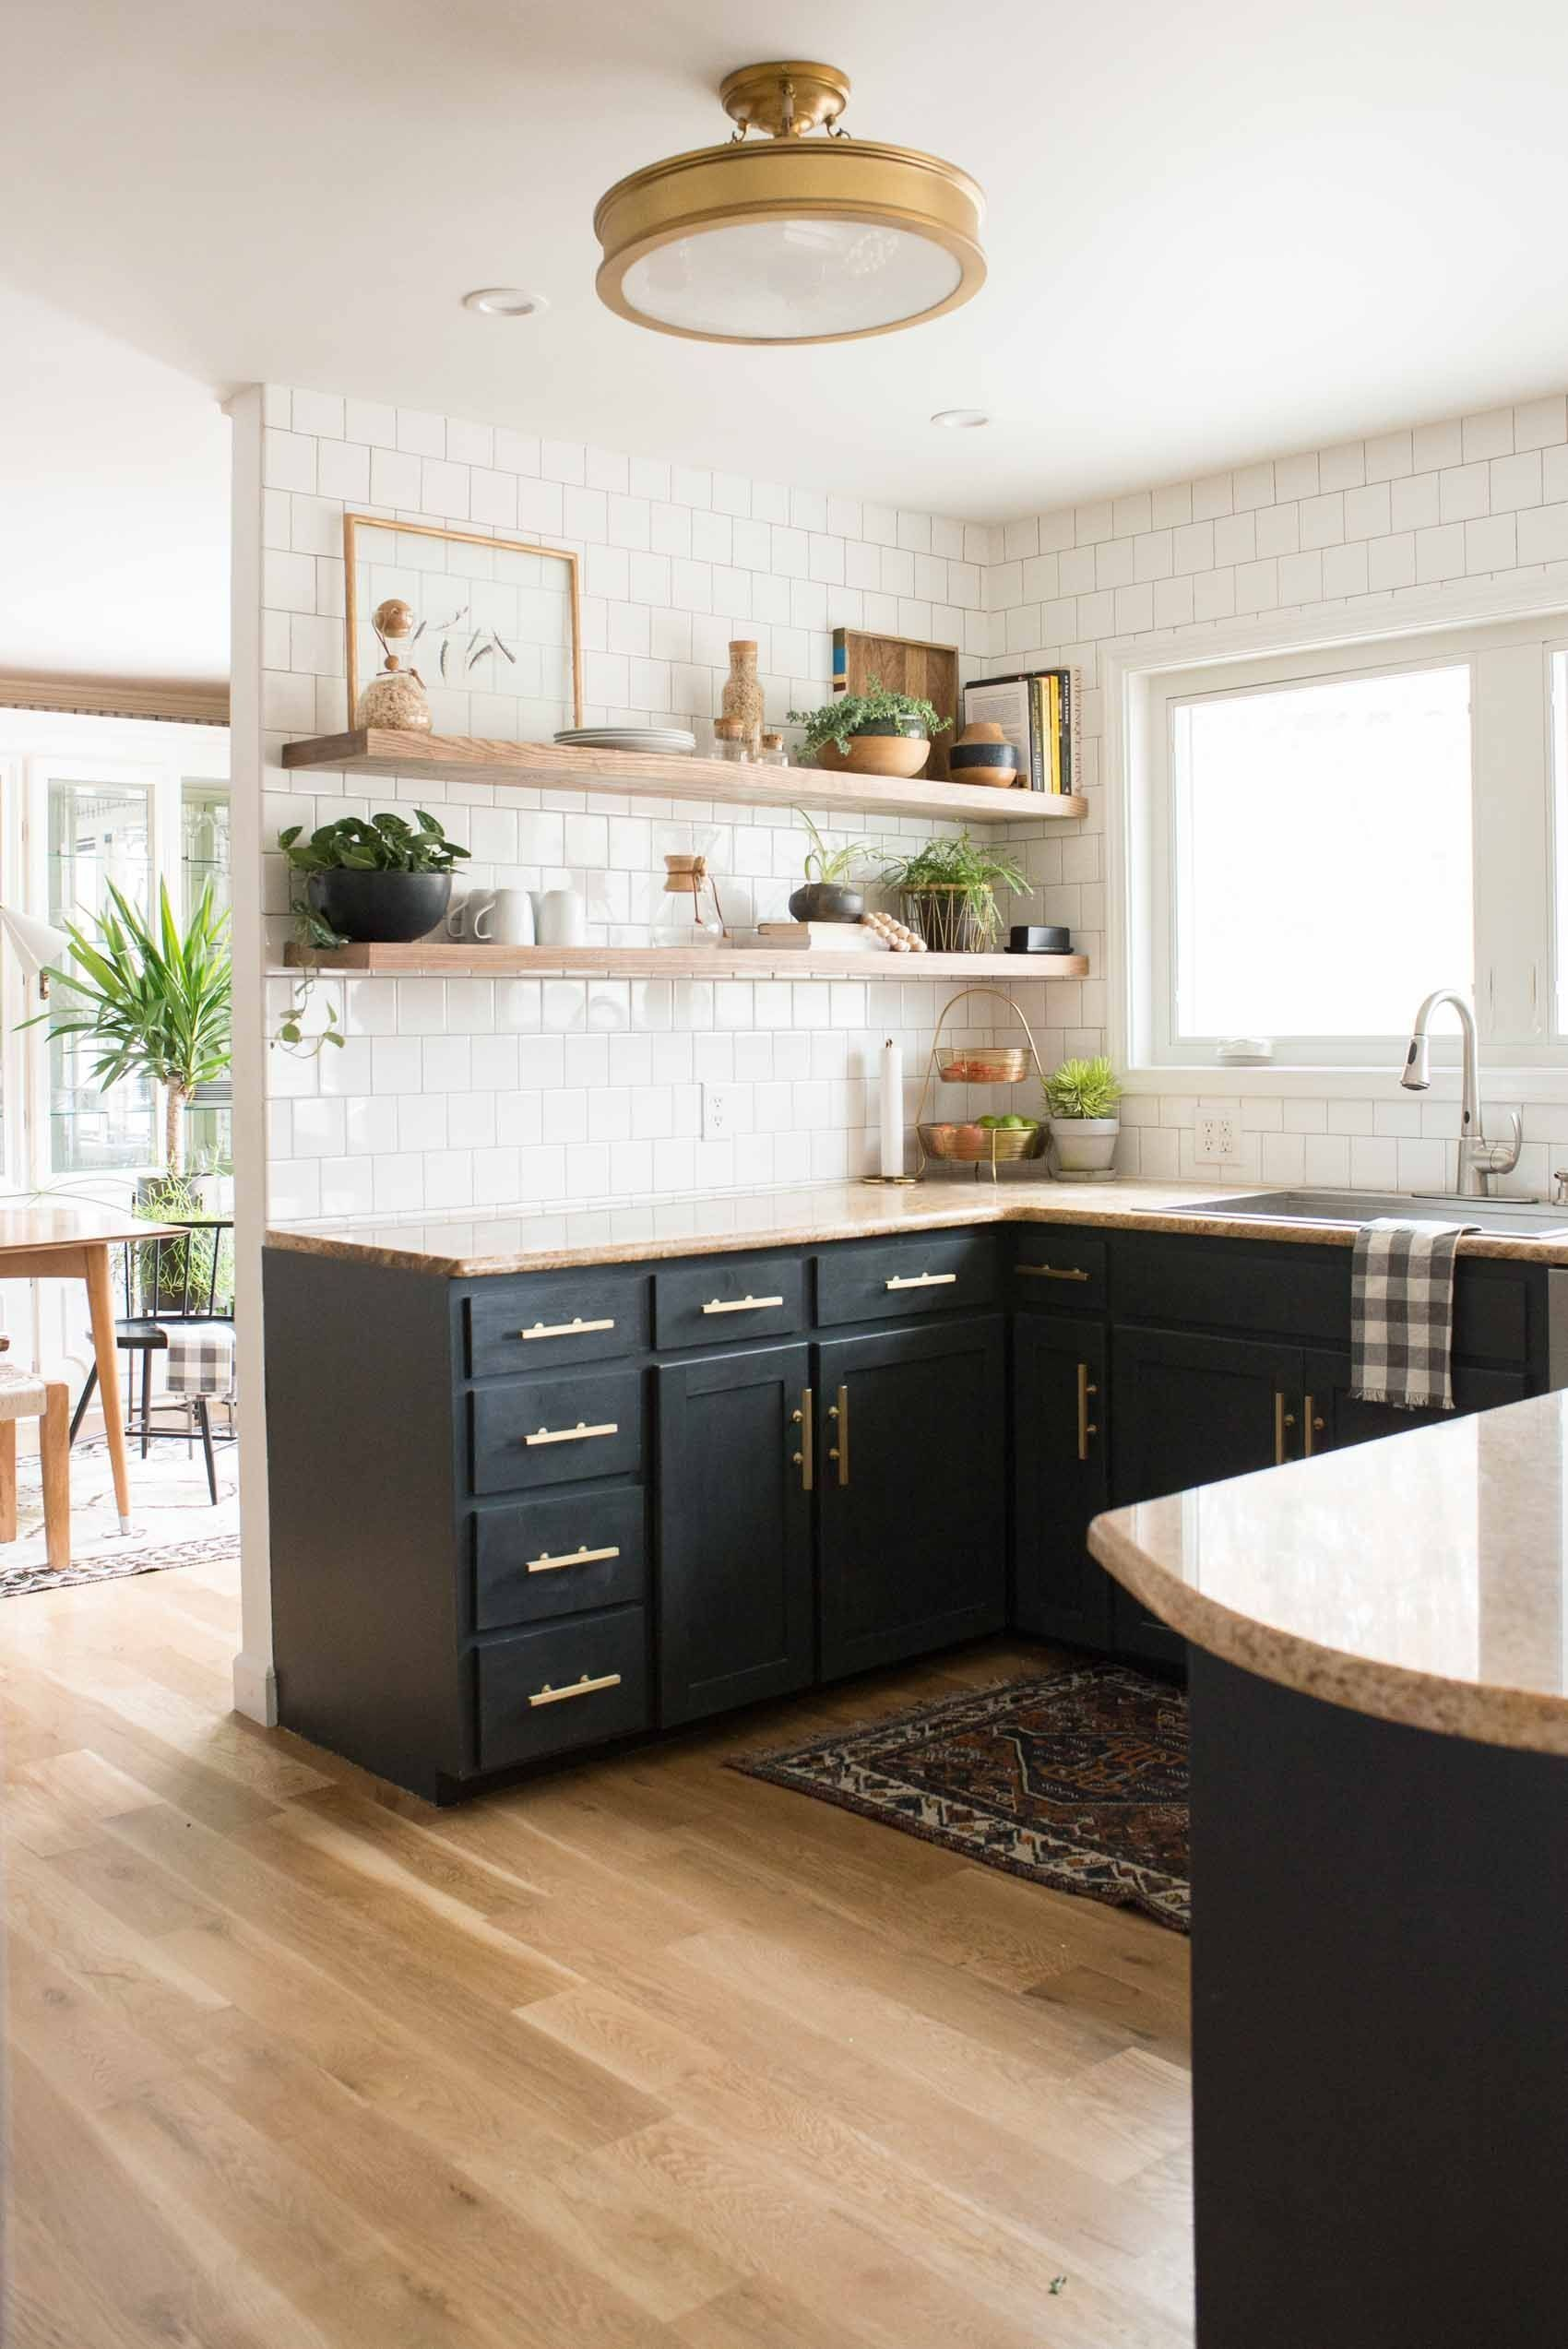 Cool 39 Impressive Kitchen Makeover Ideas On A Budget  Http://toparchitecture.net